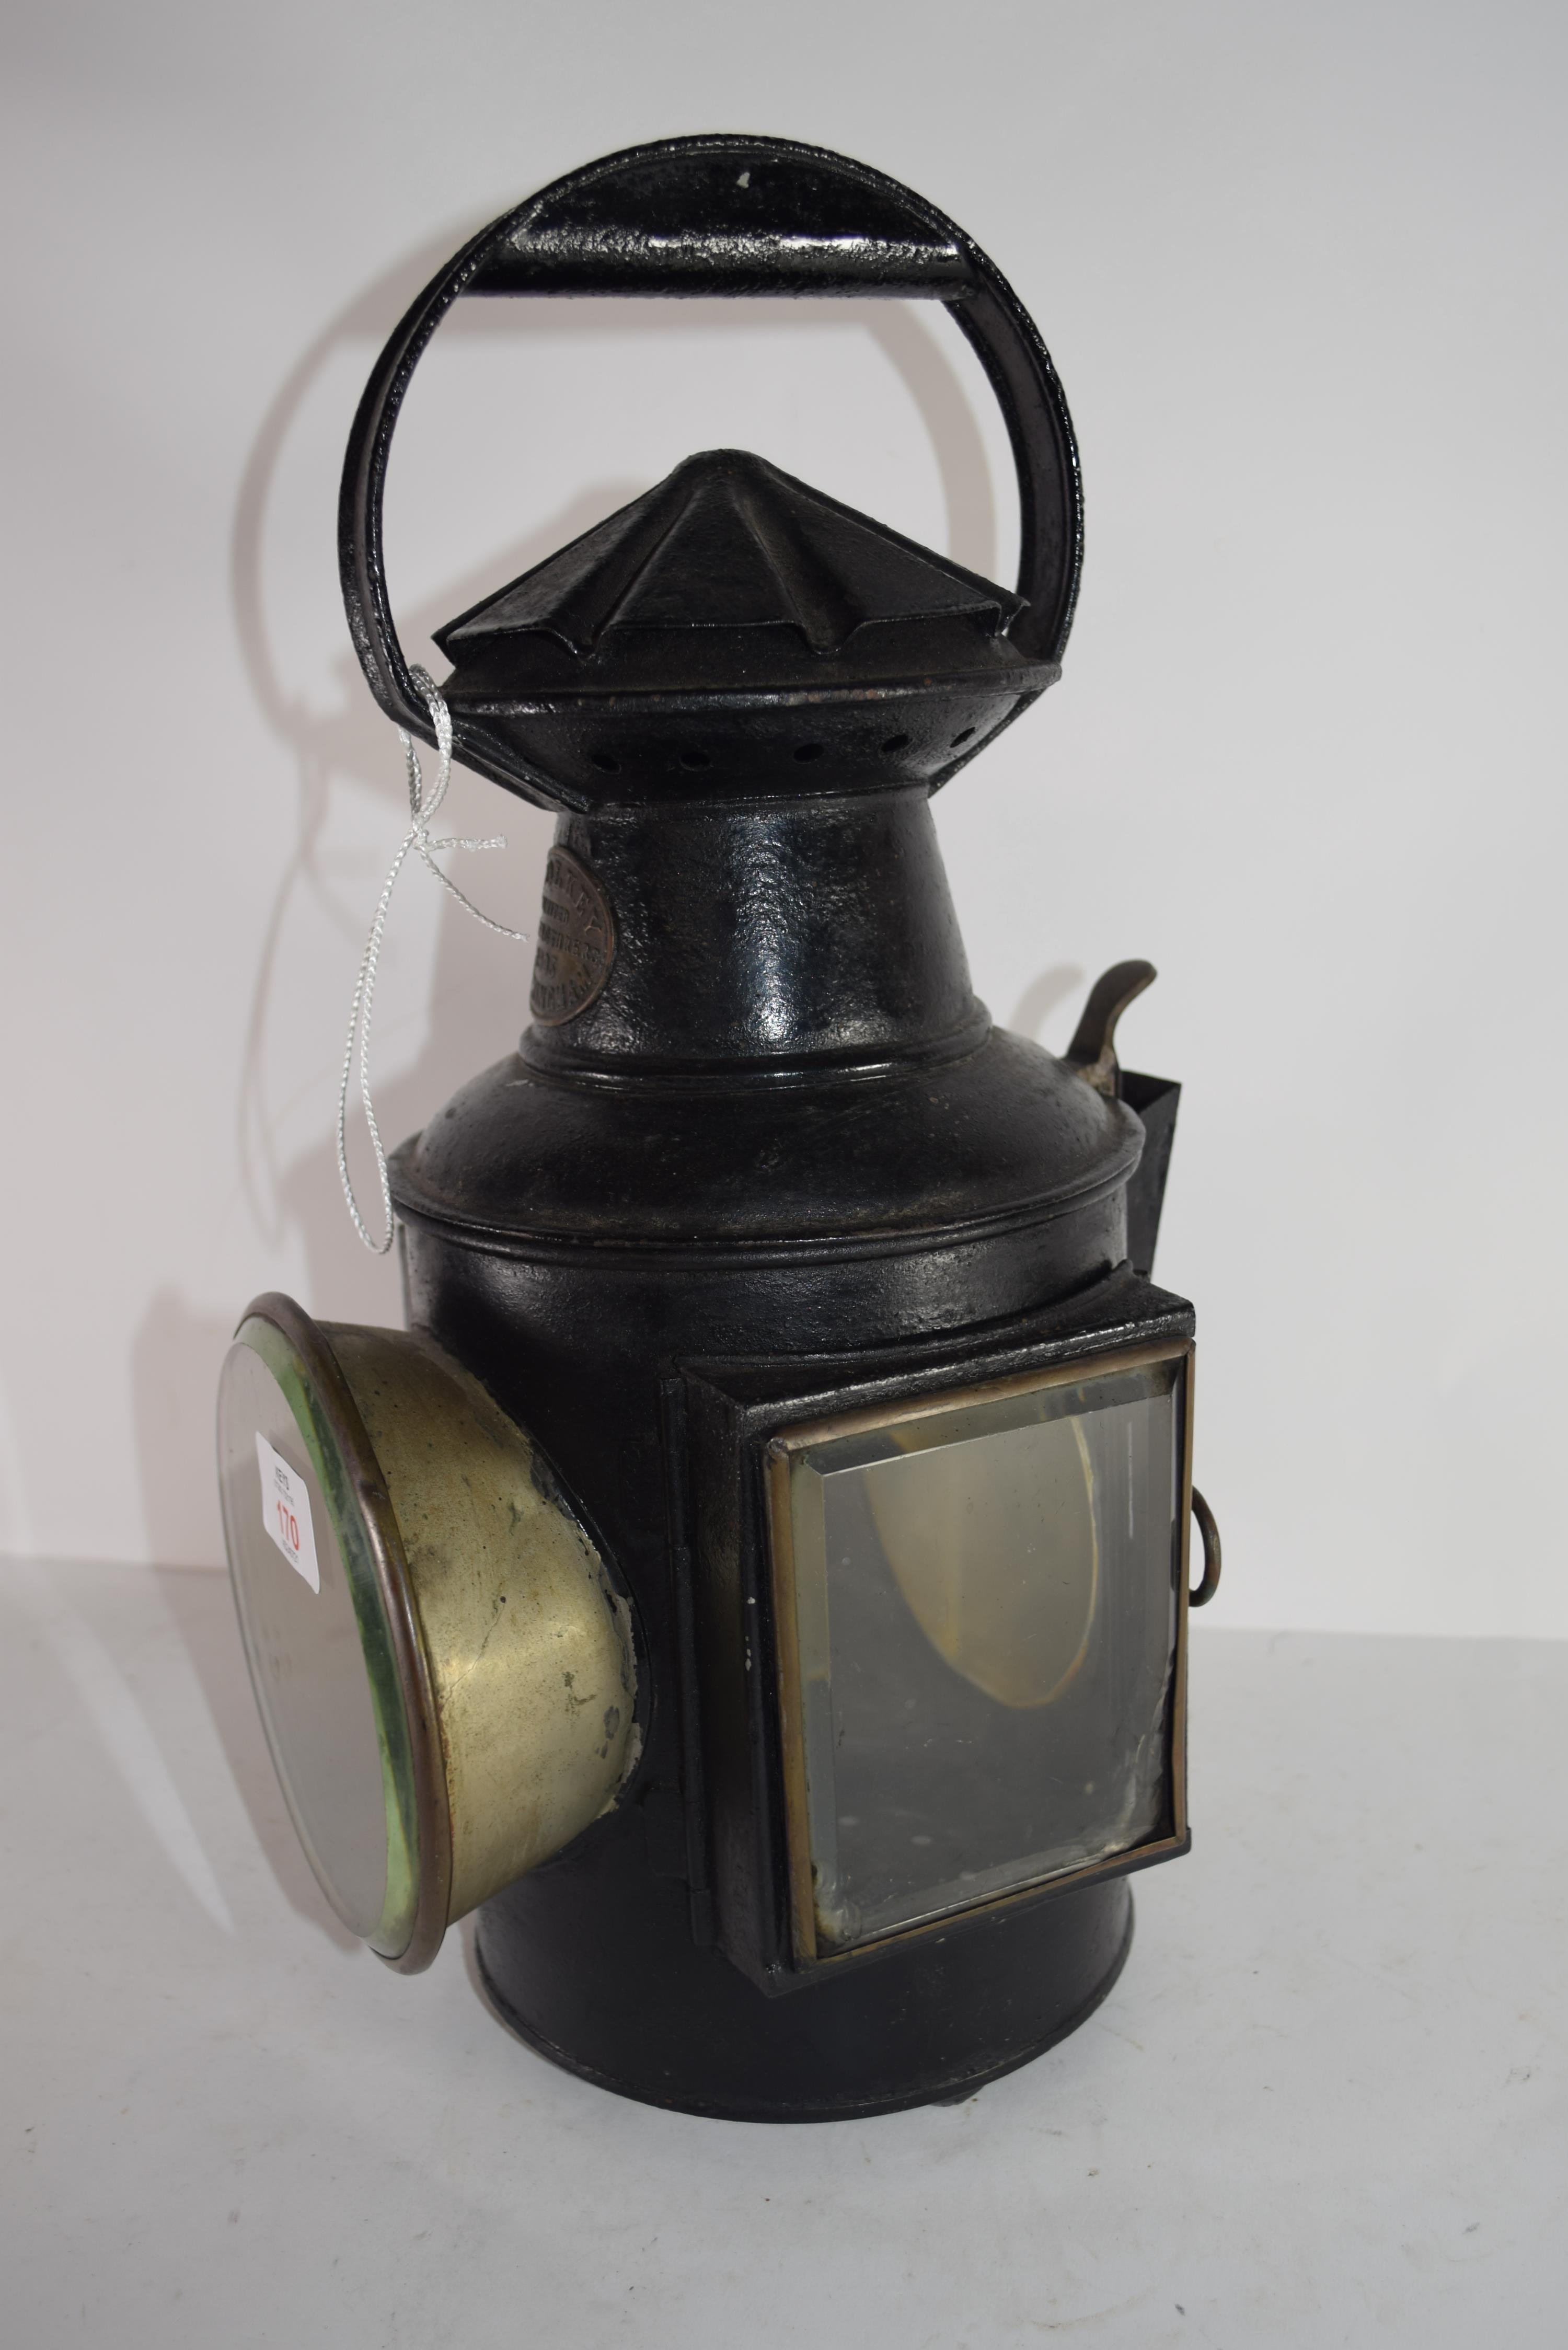 Railway light with stamp for G Polkey, 1903, Birmingham - Image 5 of 6